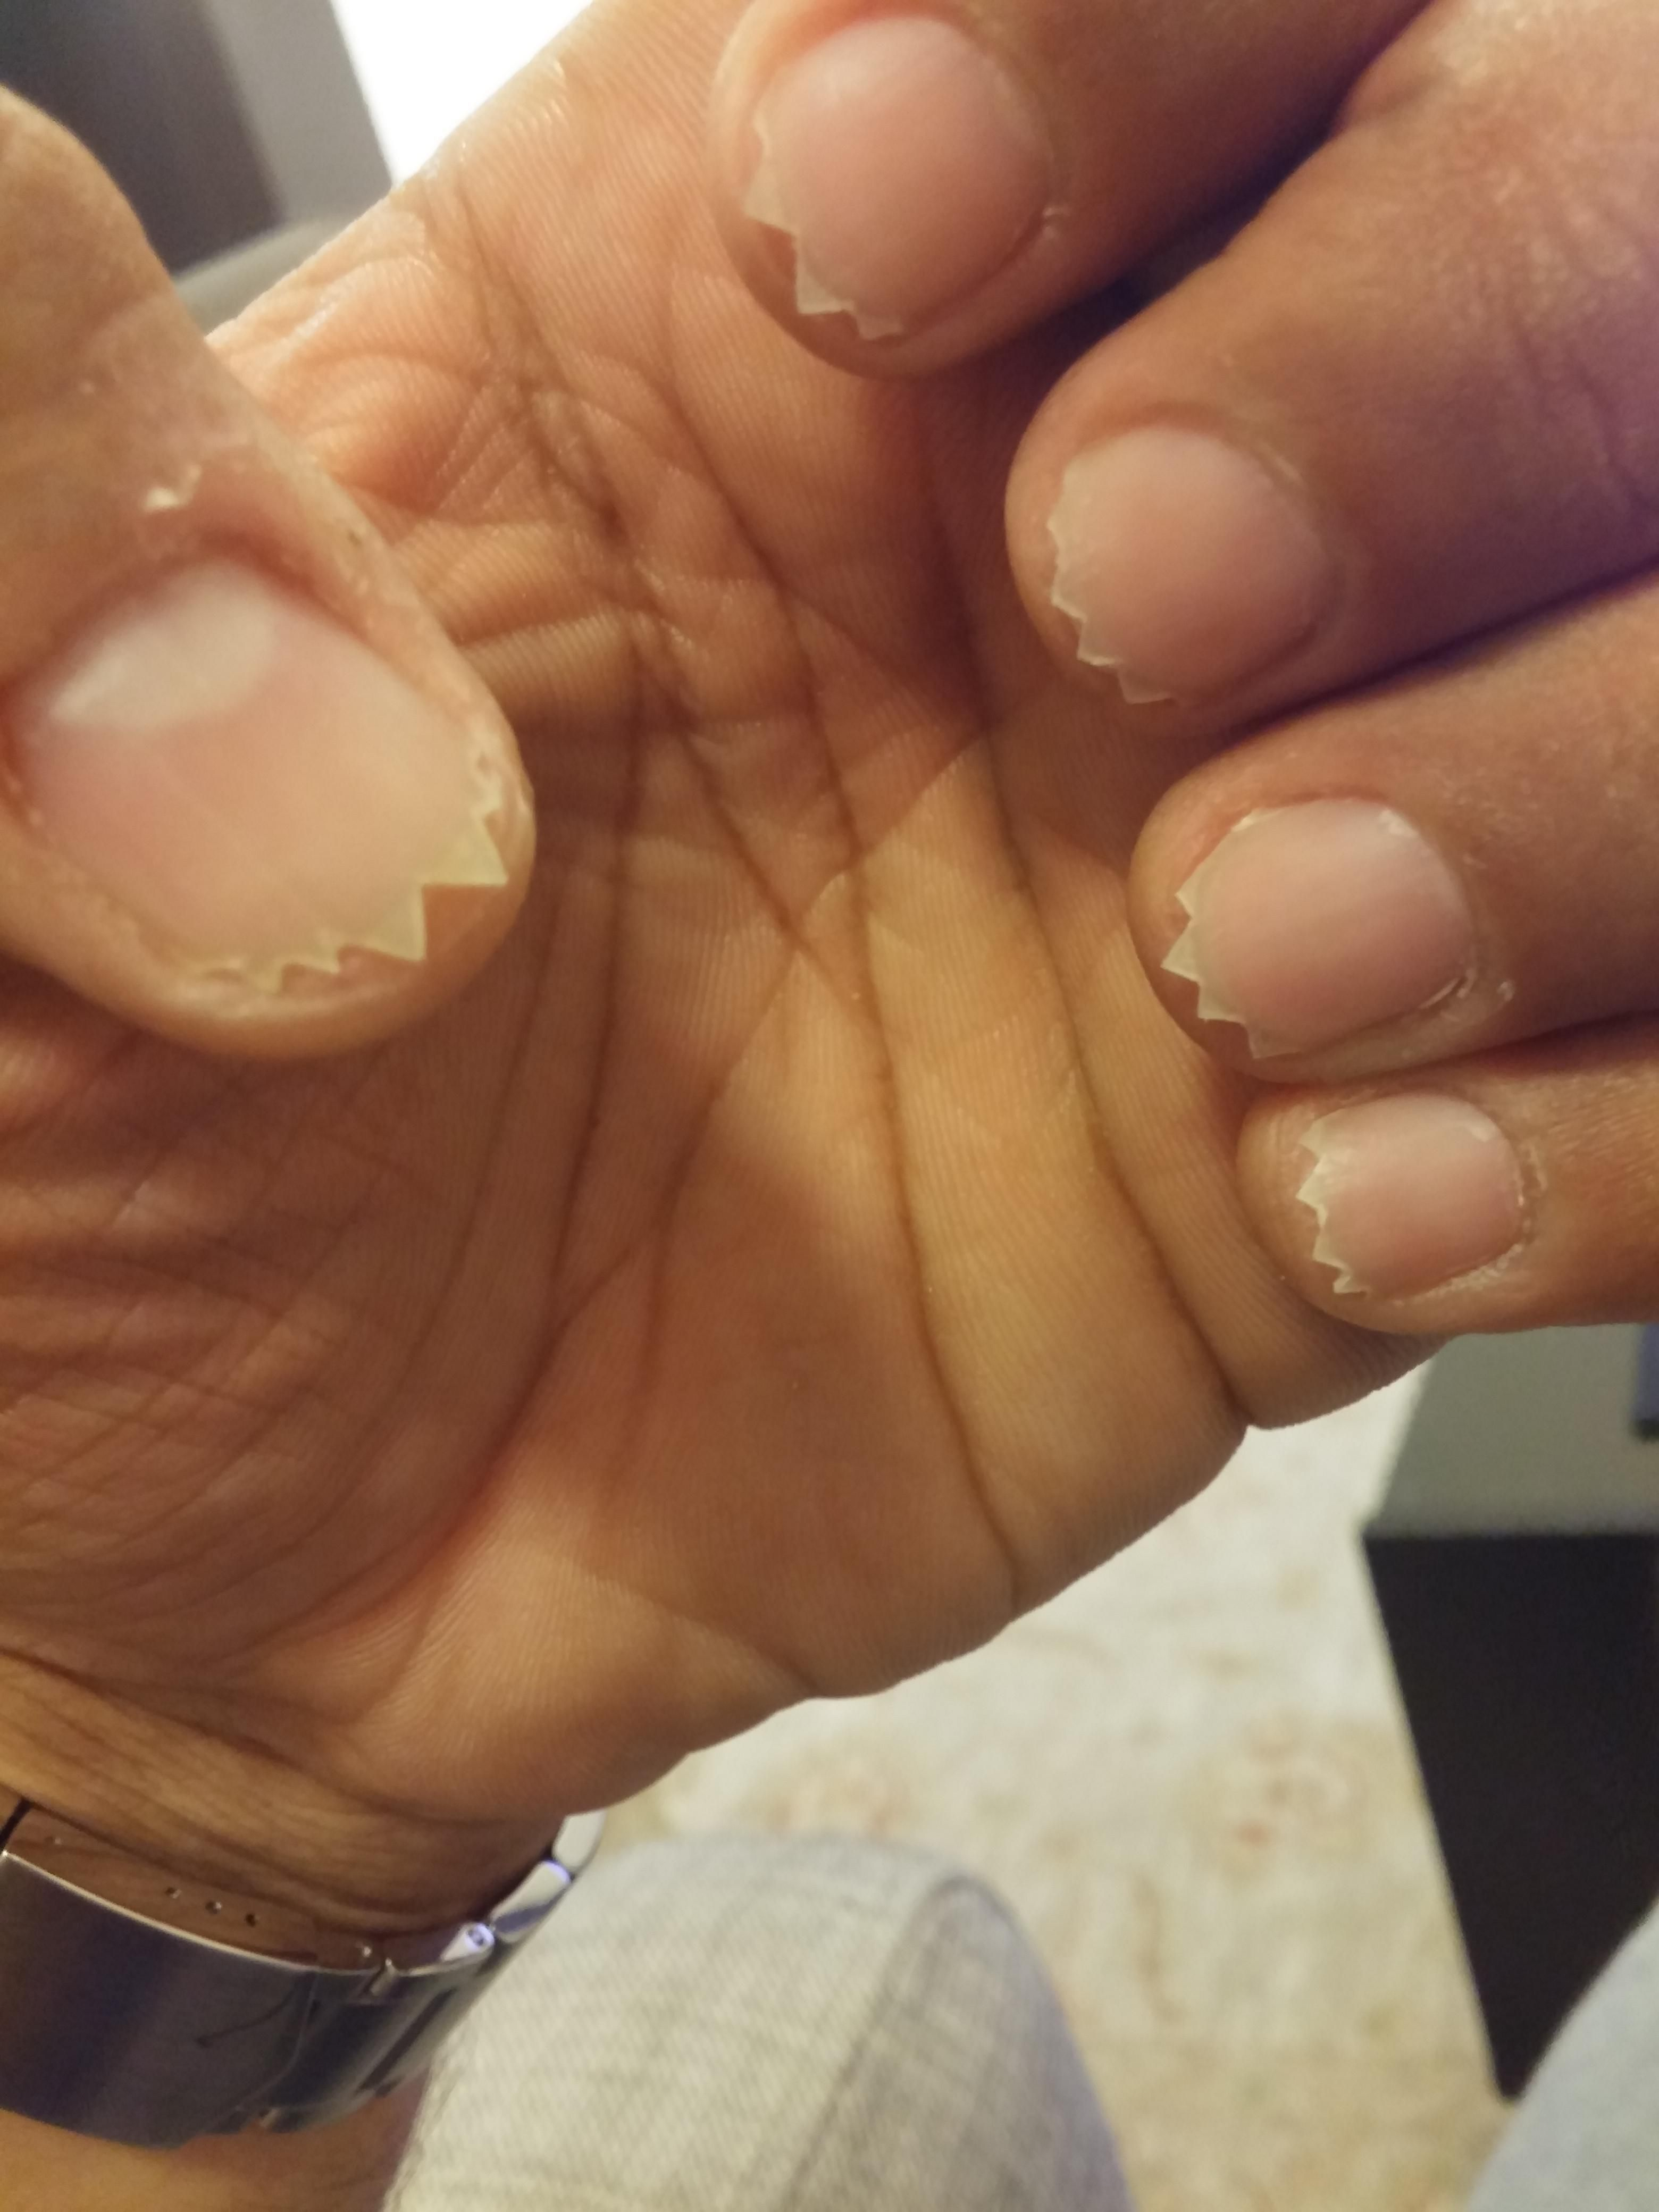 When will this become the new style of cutting nails